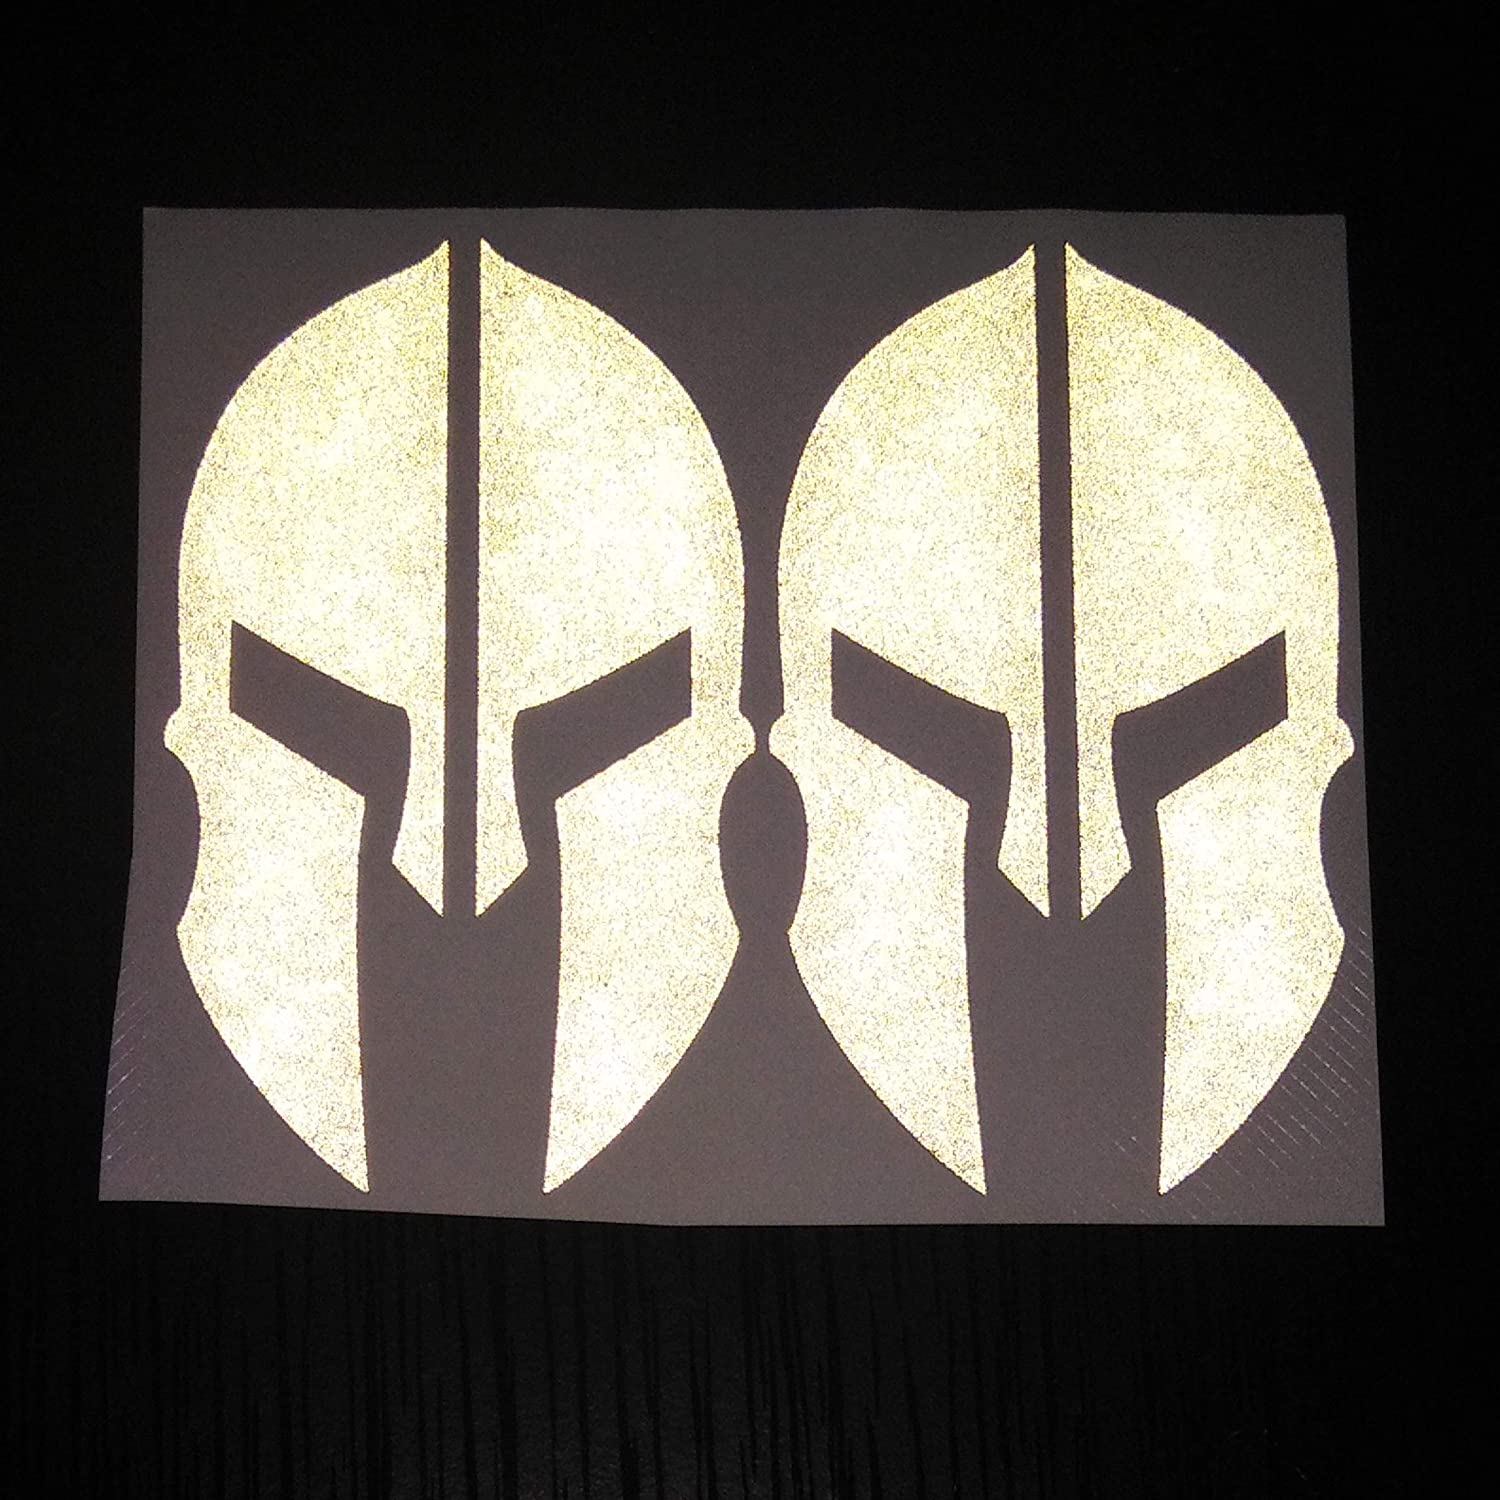 2x Black Spartan Warriors Hero Chivalry Ancient Greek Reflects White Reflective Decal Decals Vinyl Sticker Safety Night Rear for Motorcycle Bike Bicycle Car Helmet Tailgate Laptop Notebook Tablet